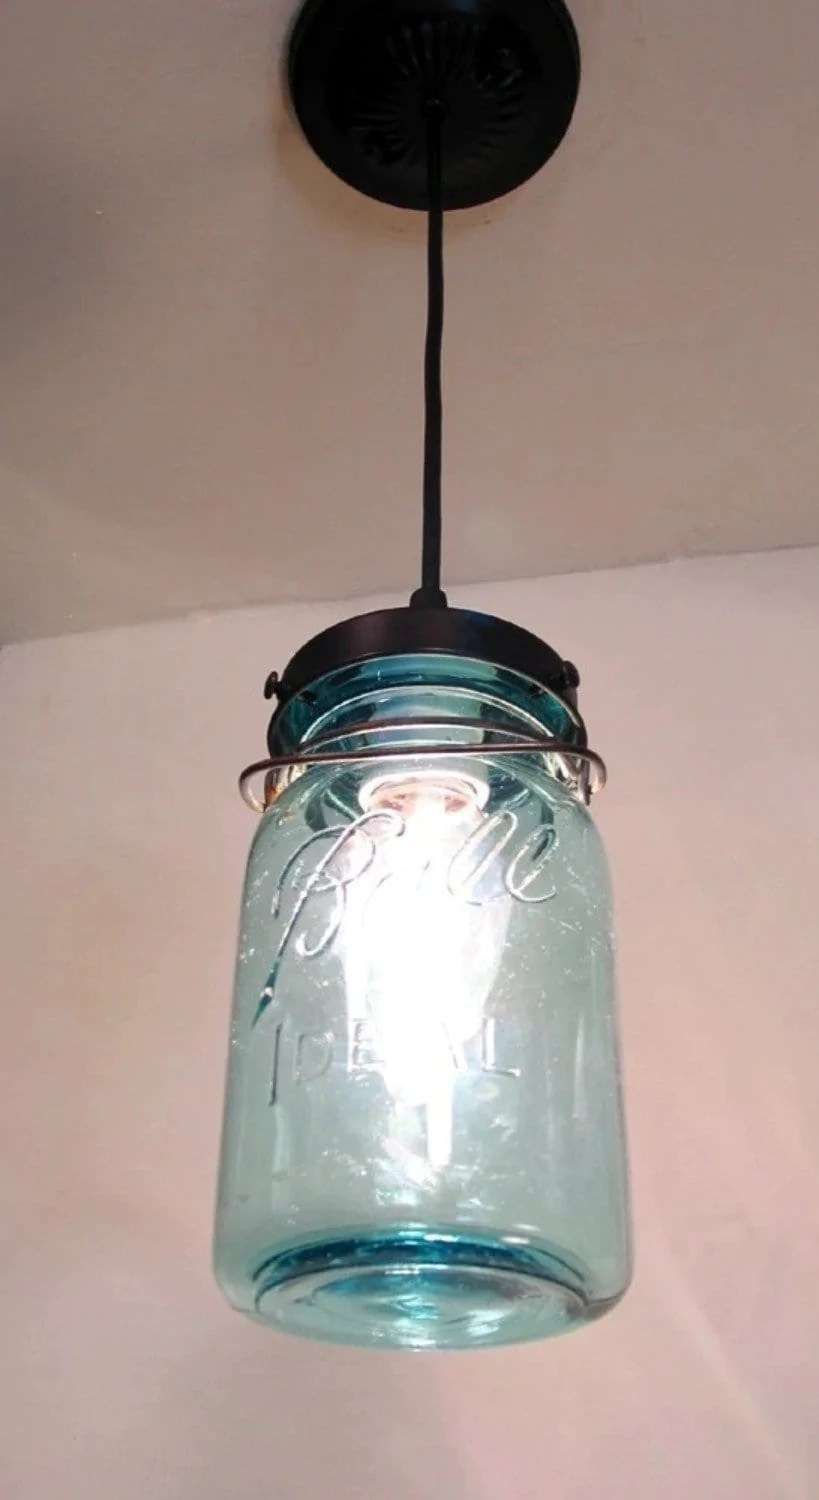 Ceiling Light Wire Color Code On Wiring A Ceiling With Light Blue And